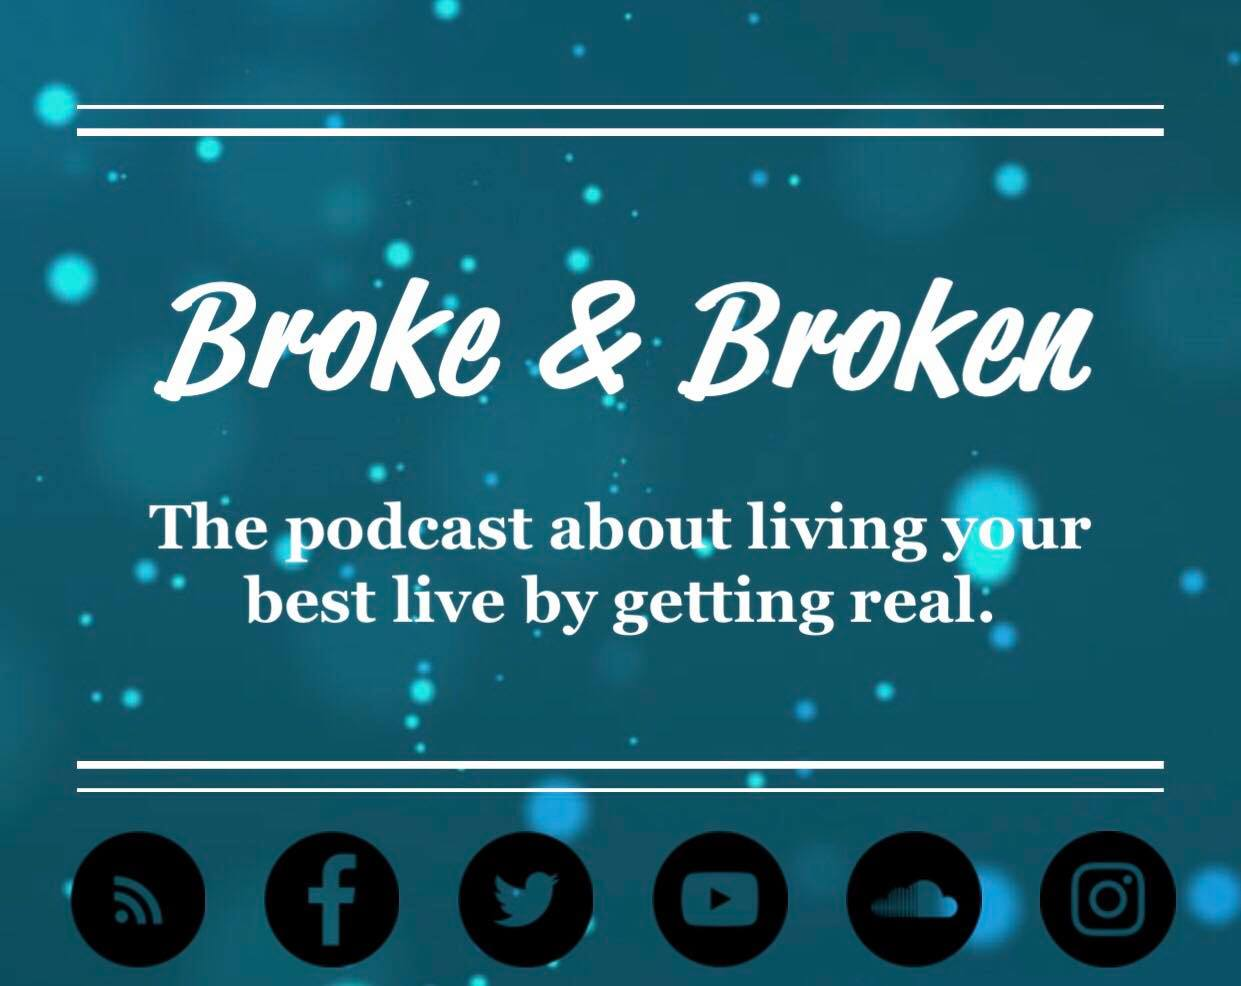 Broke & Broken Podcast